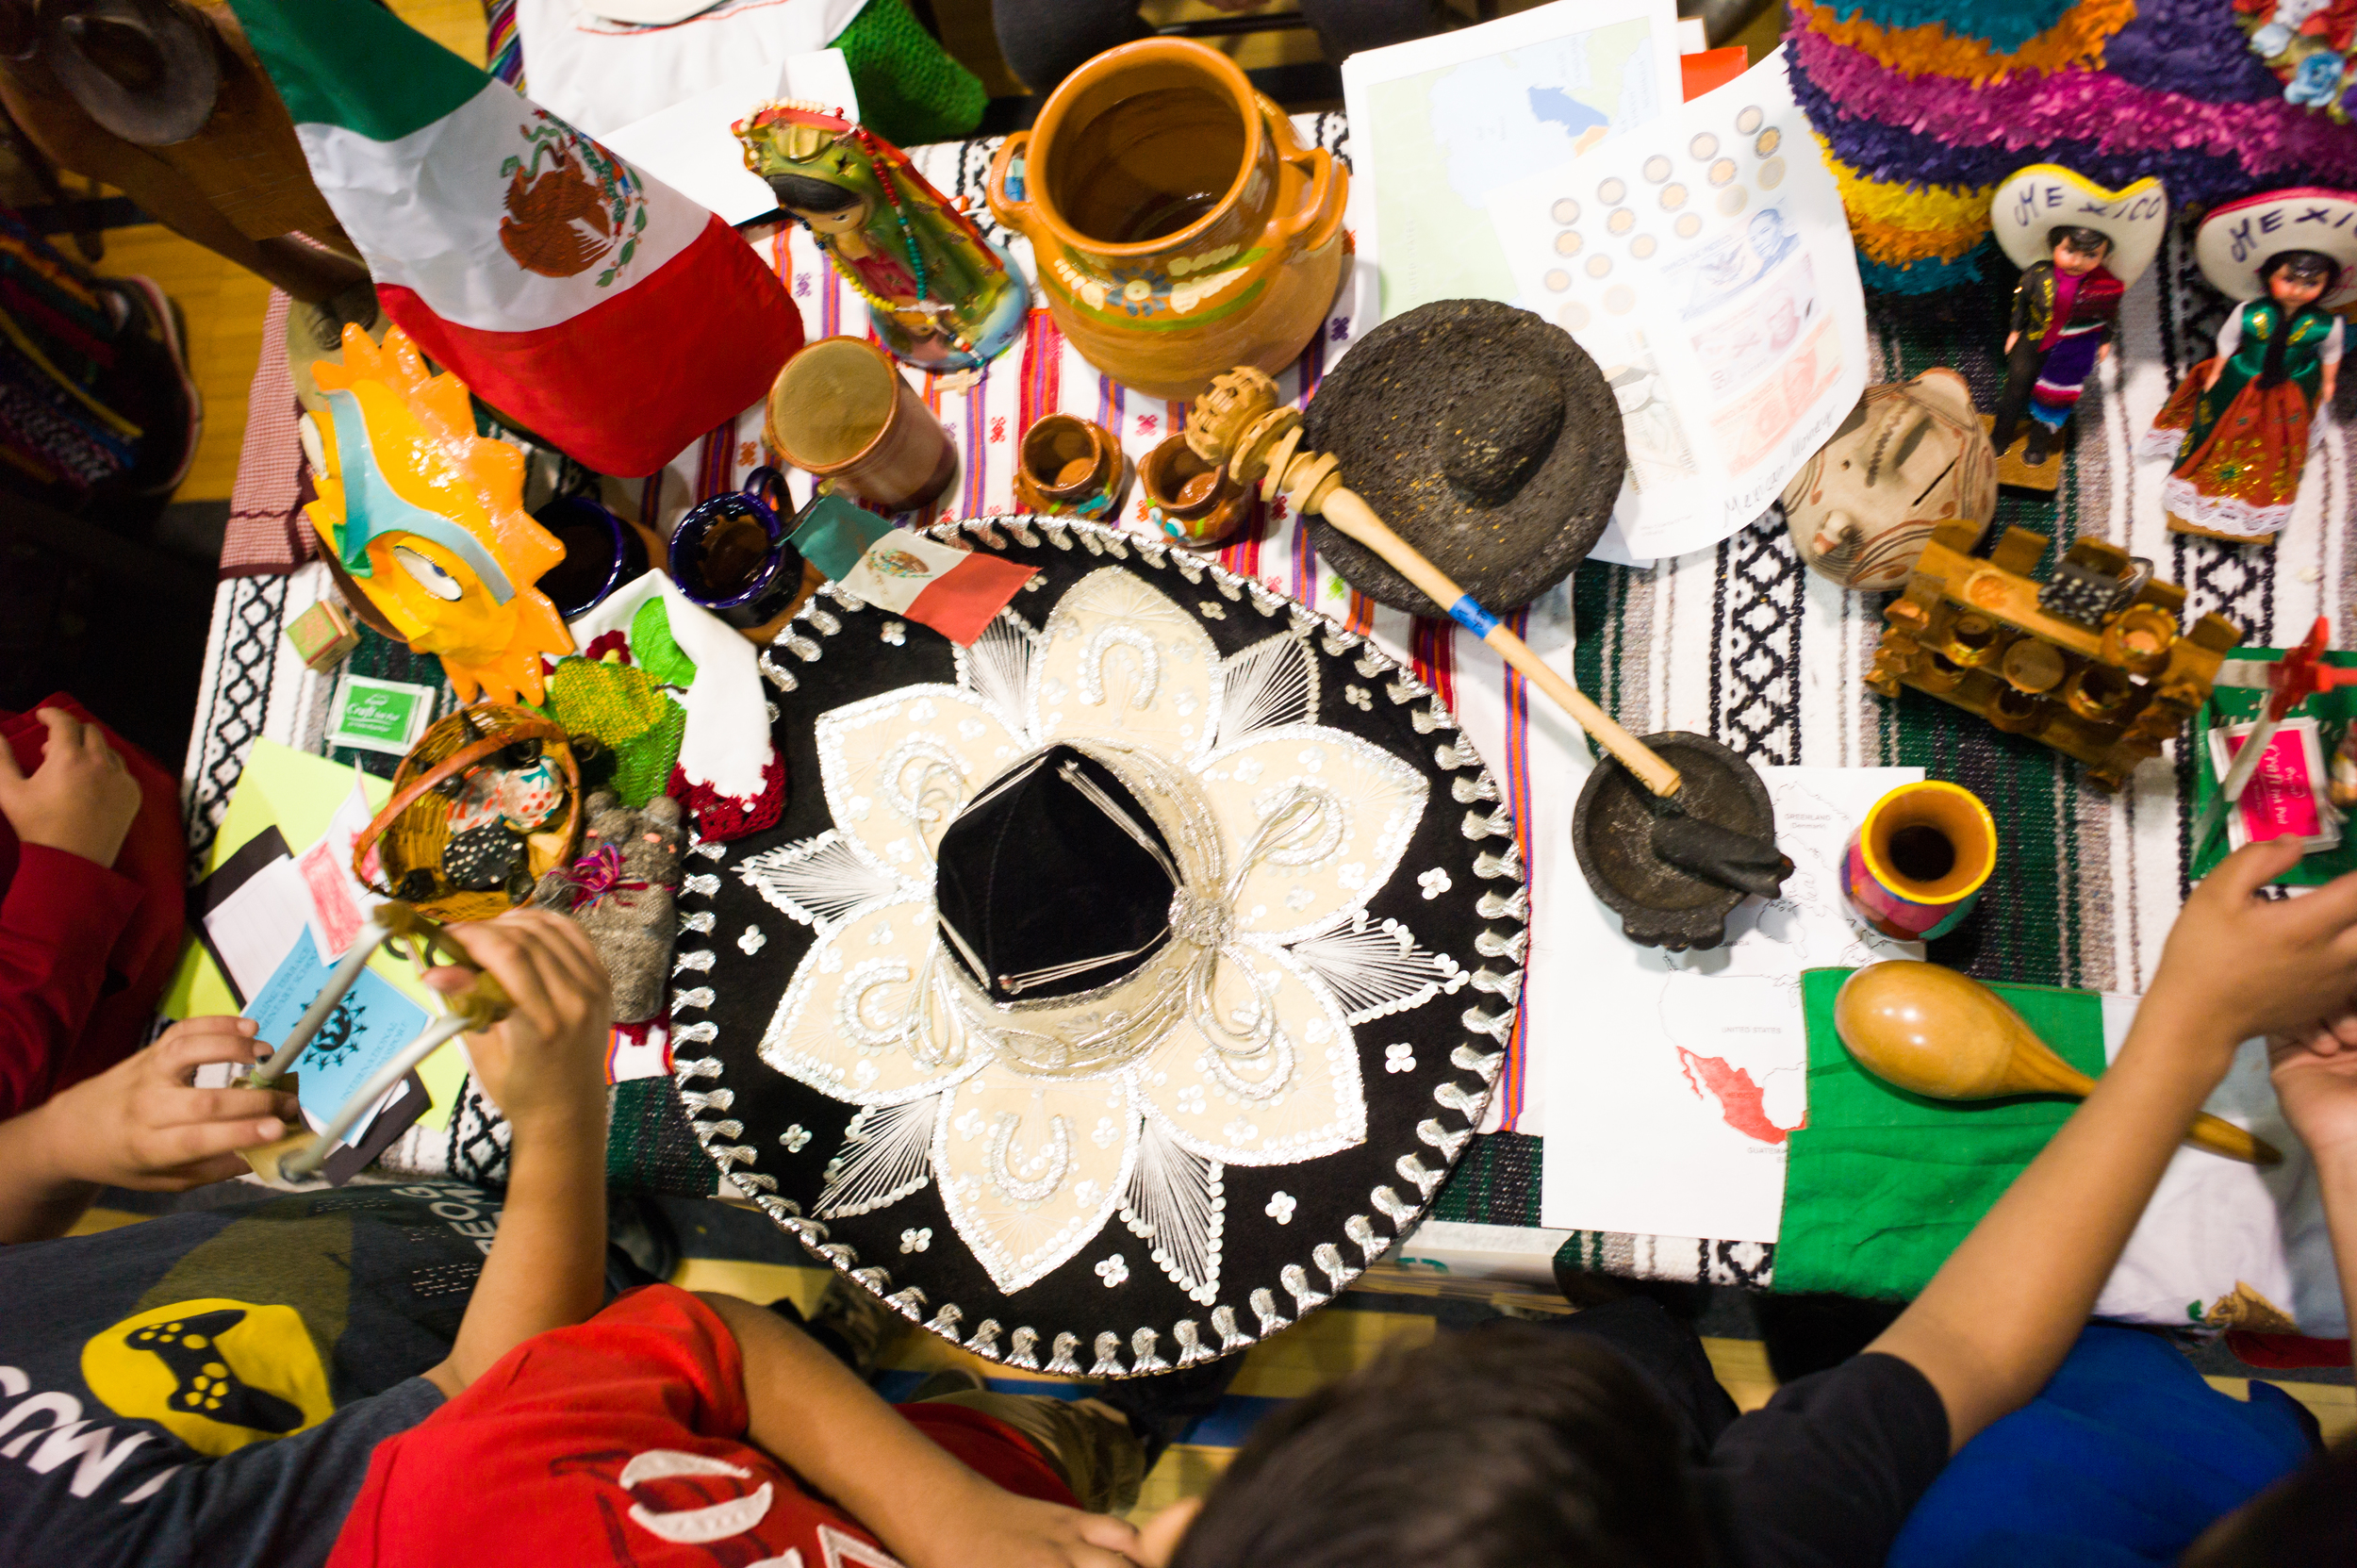 The Mexican table overflowed with colorful items showcasing the country's culture.